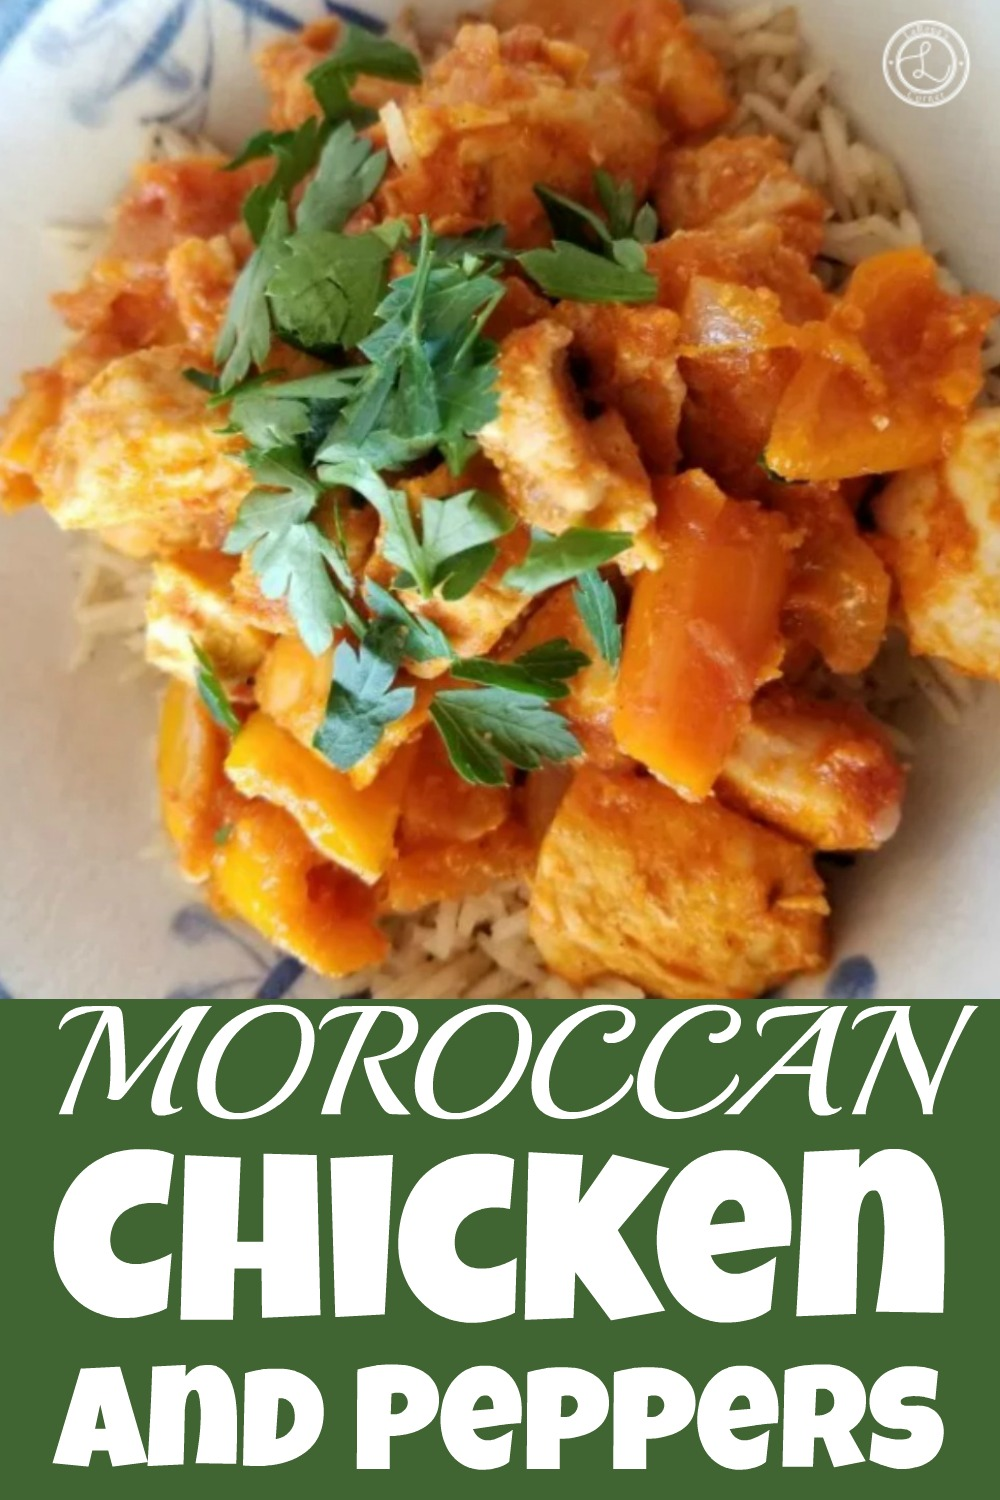 A bowl of Moroccan chicken with cauliflower rice and parsley to decorate